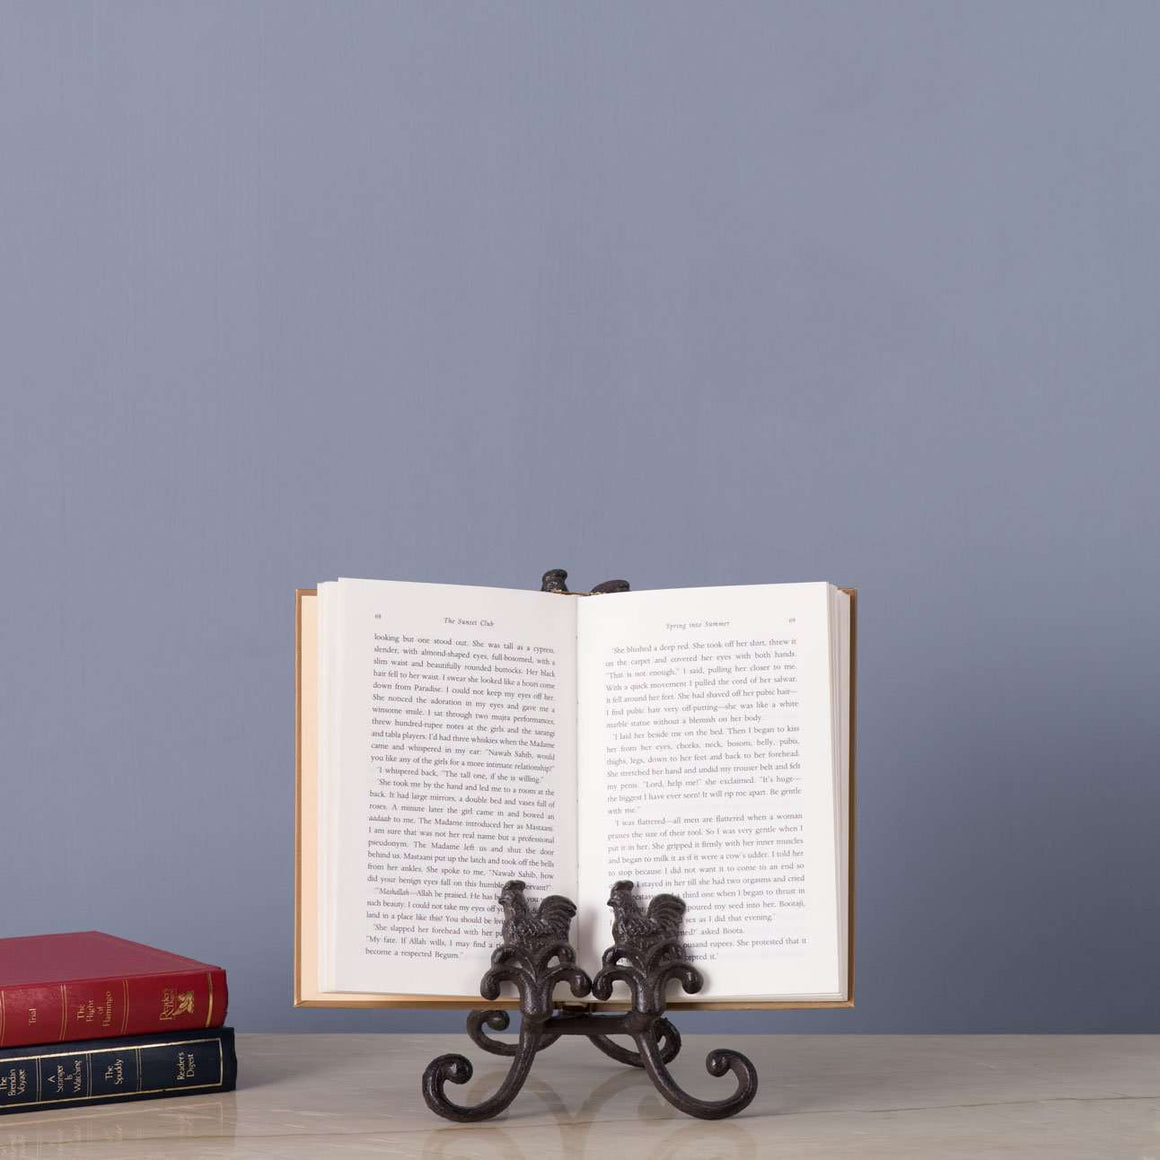 The Rooster Rustic Cast Iron Book Holder